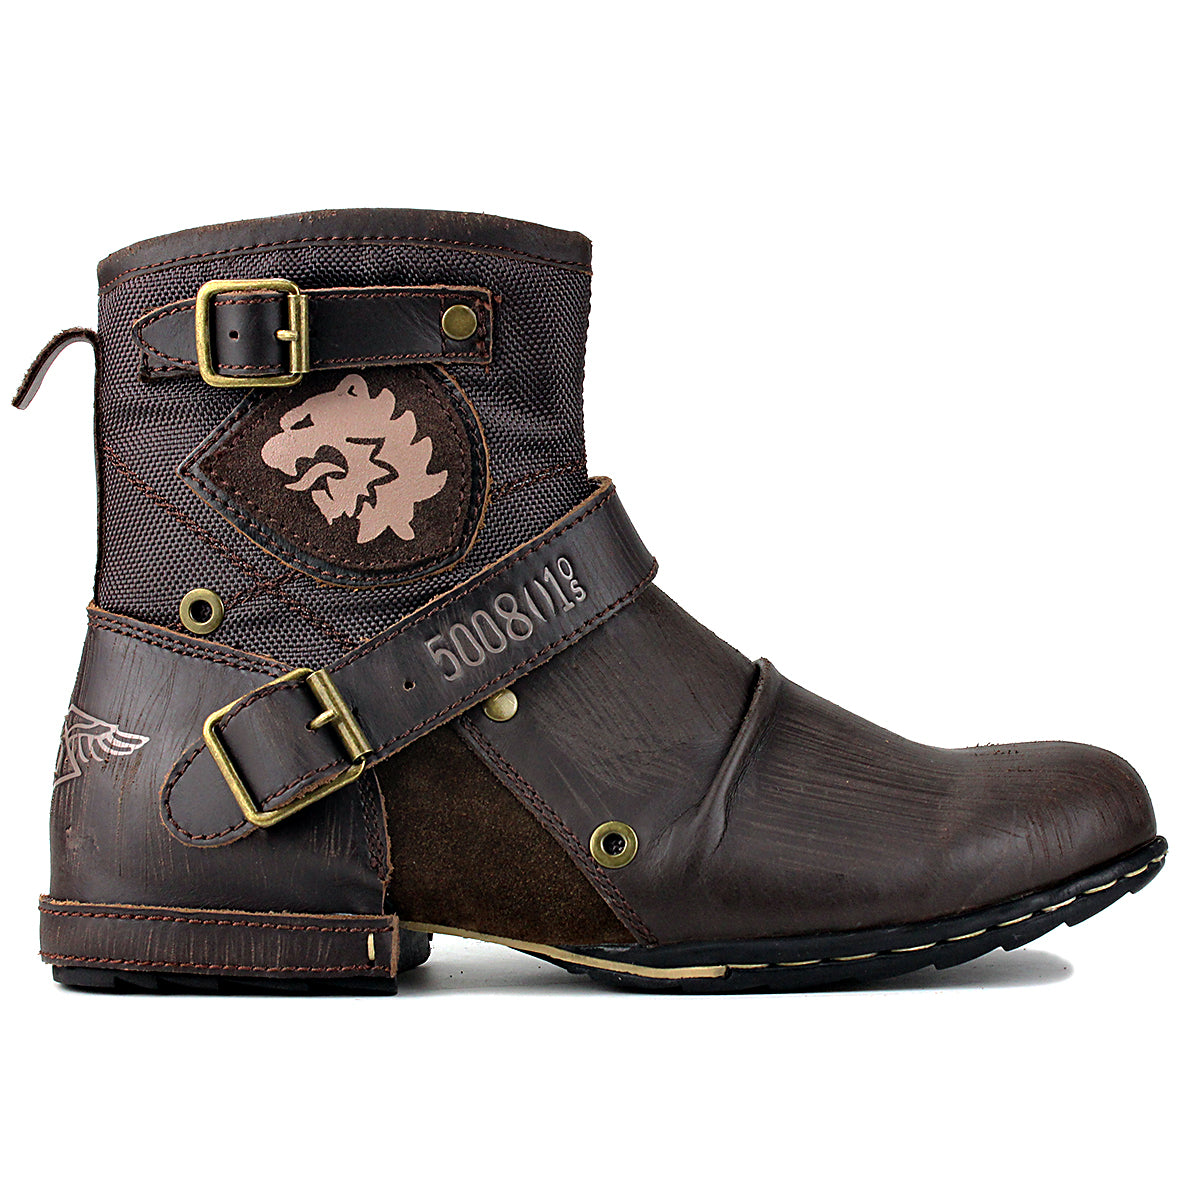 WIIPOP Genuine Leather High Quality Boots